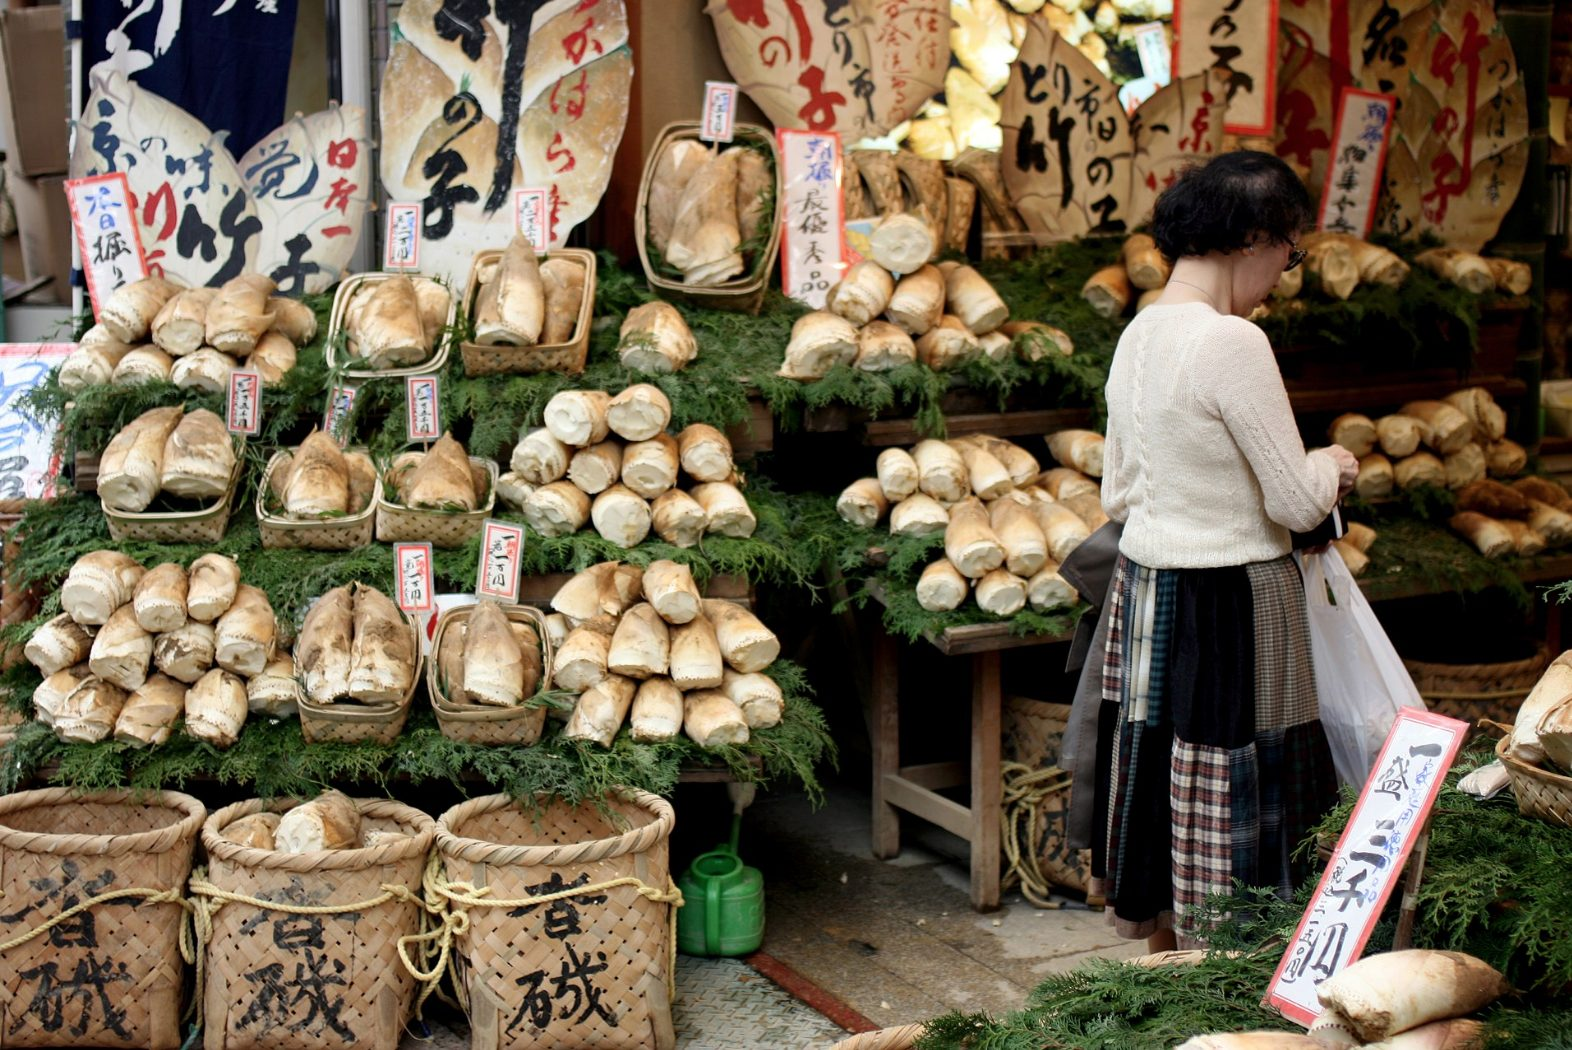 Bamboo shoots in a Japanese market